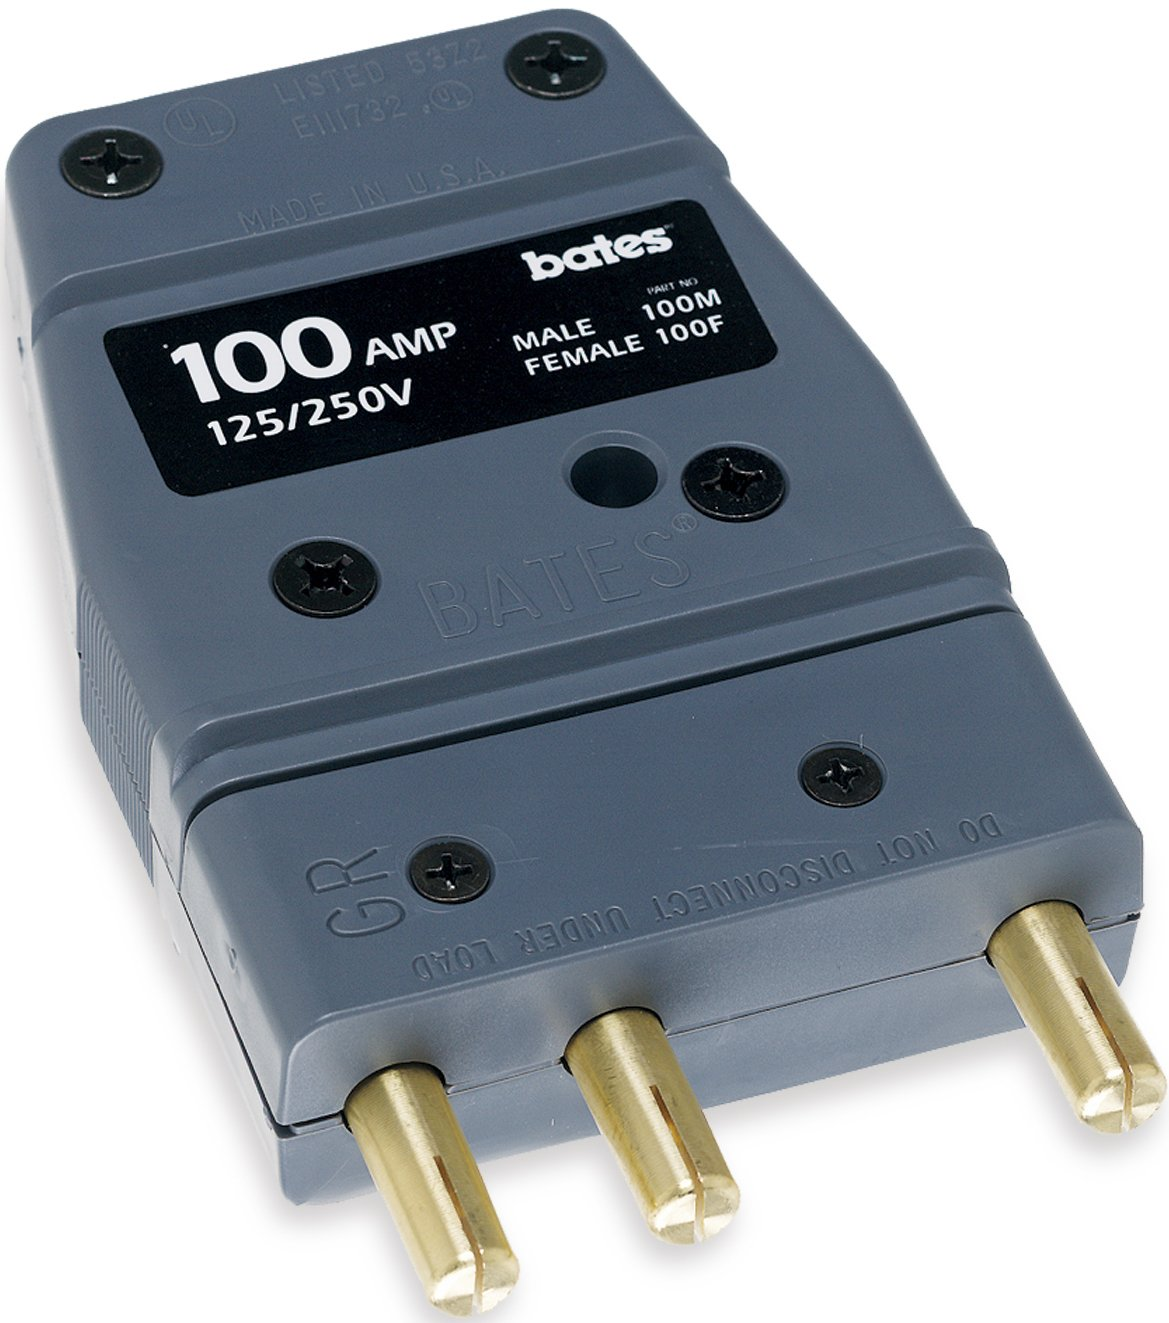 Stage Pin 100 Amp Male Inline Marinco Power Products Marinco 100M Bates 125 Volt